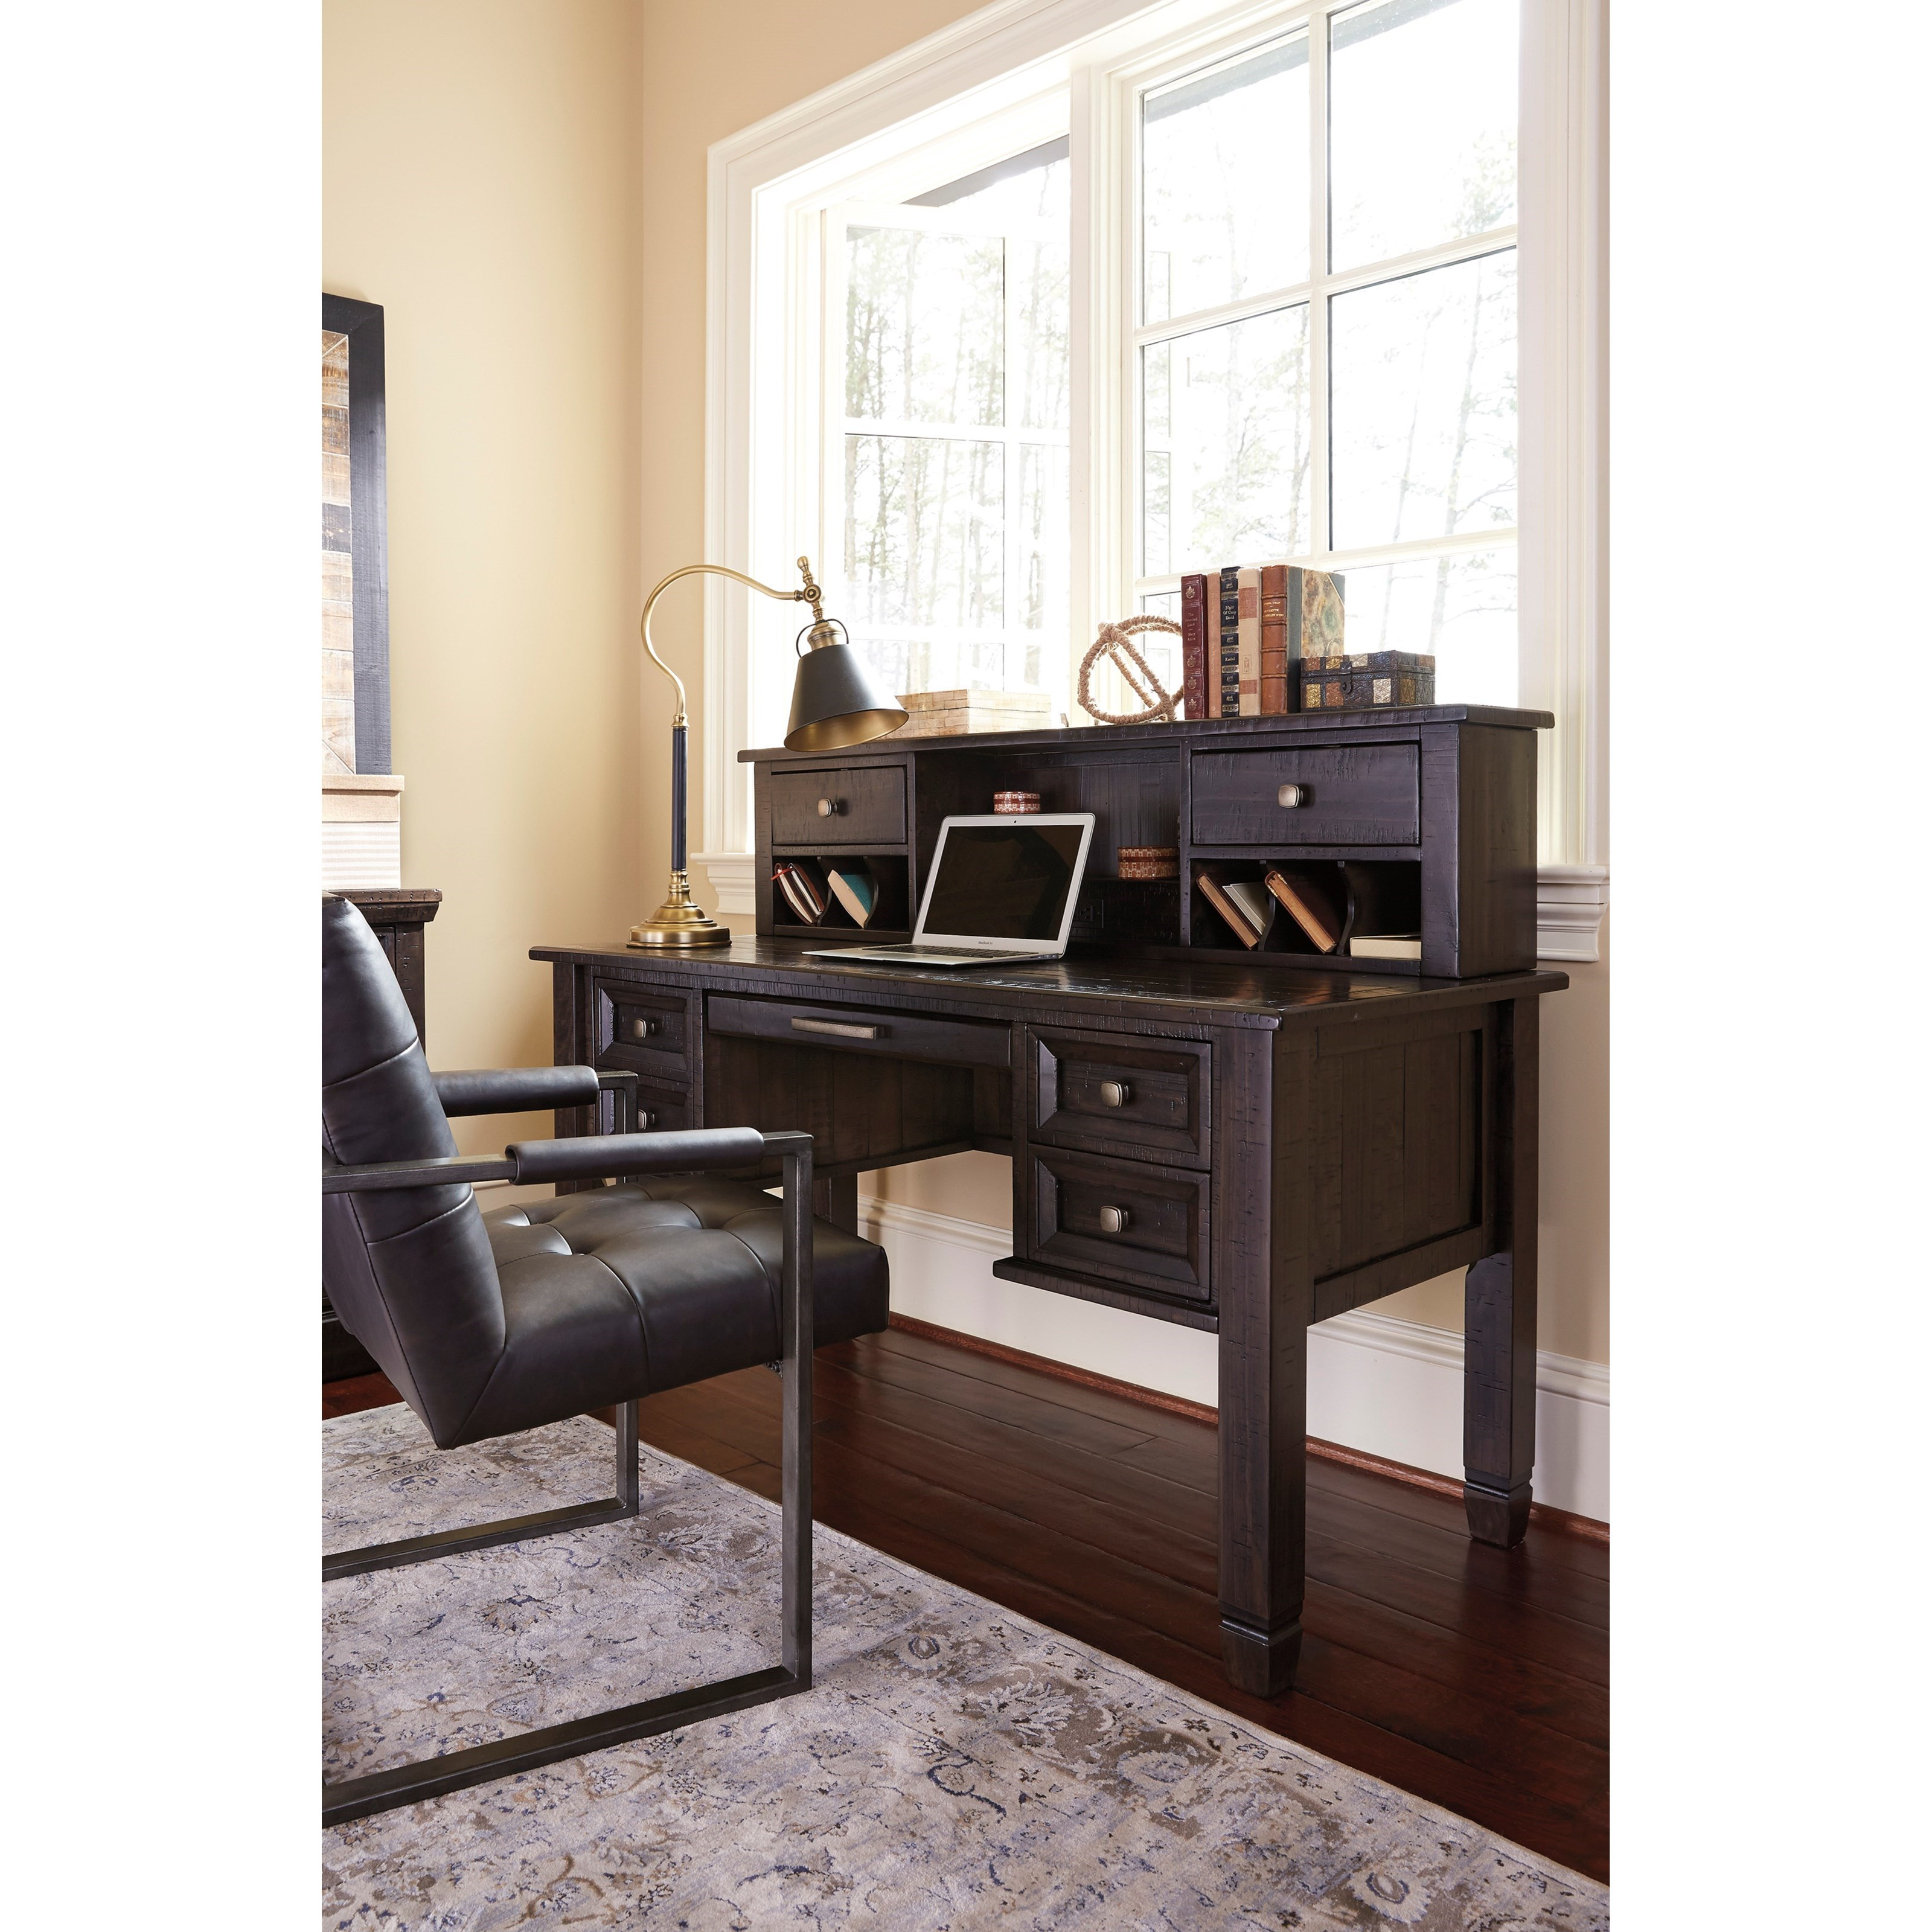 Ashley Furniture Office Desk: Solid Pine Home Office Desk & Hutch With Power Strip By